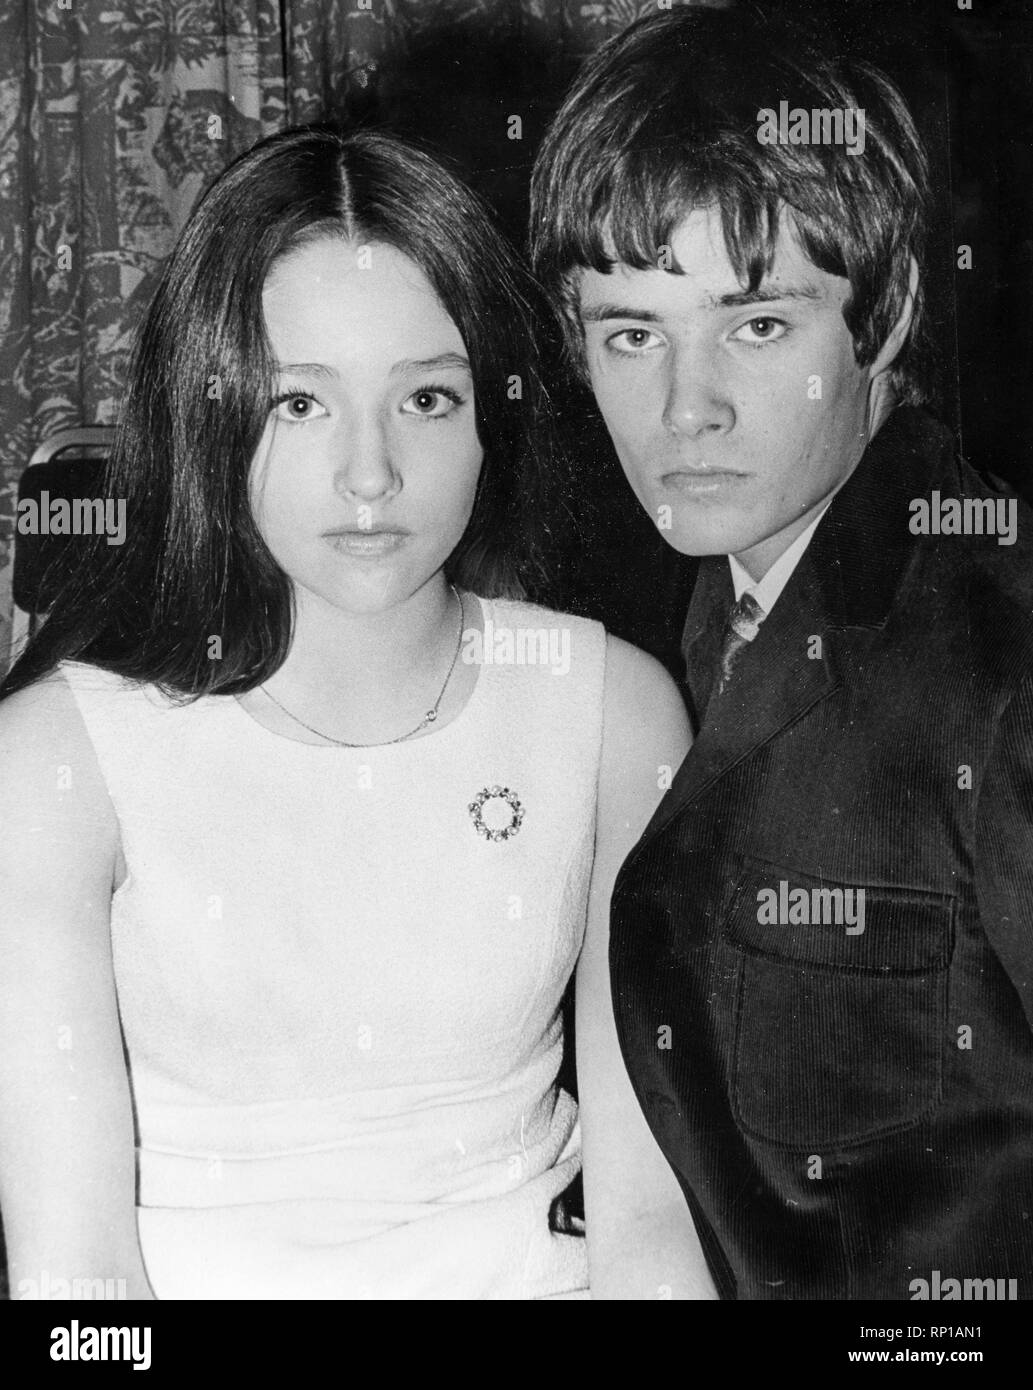 olivia hussey young